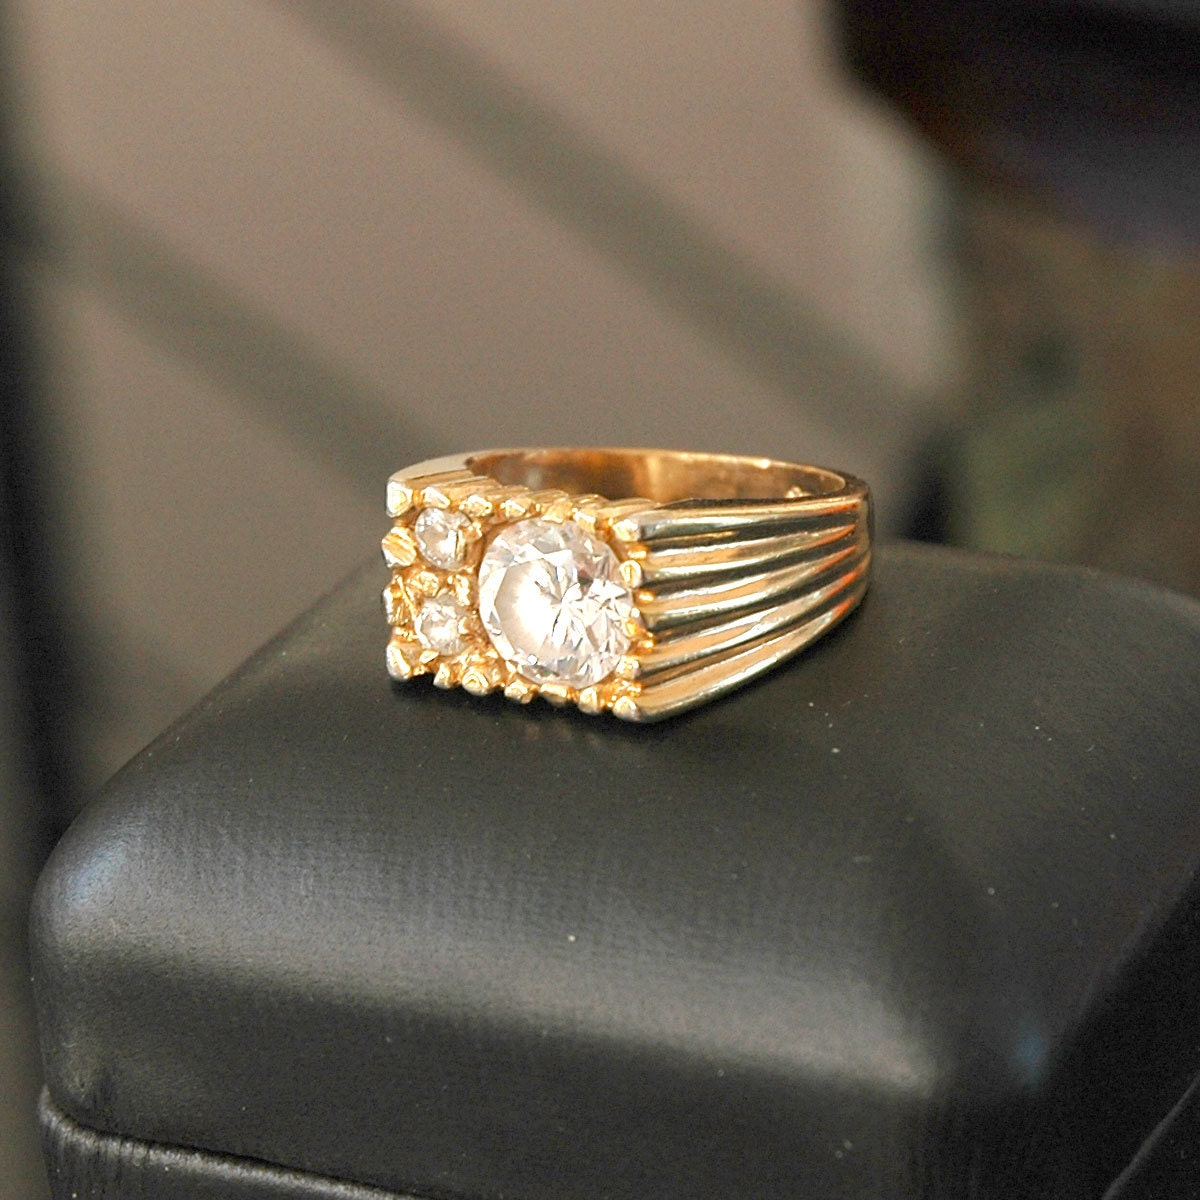 Men s High Roller Ring CZ Stones 1970s 18K HGE by VWayne on Etsy